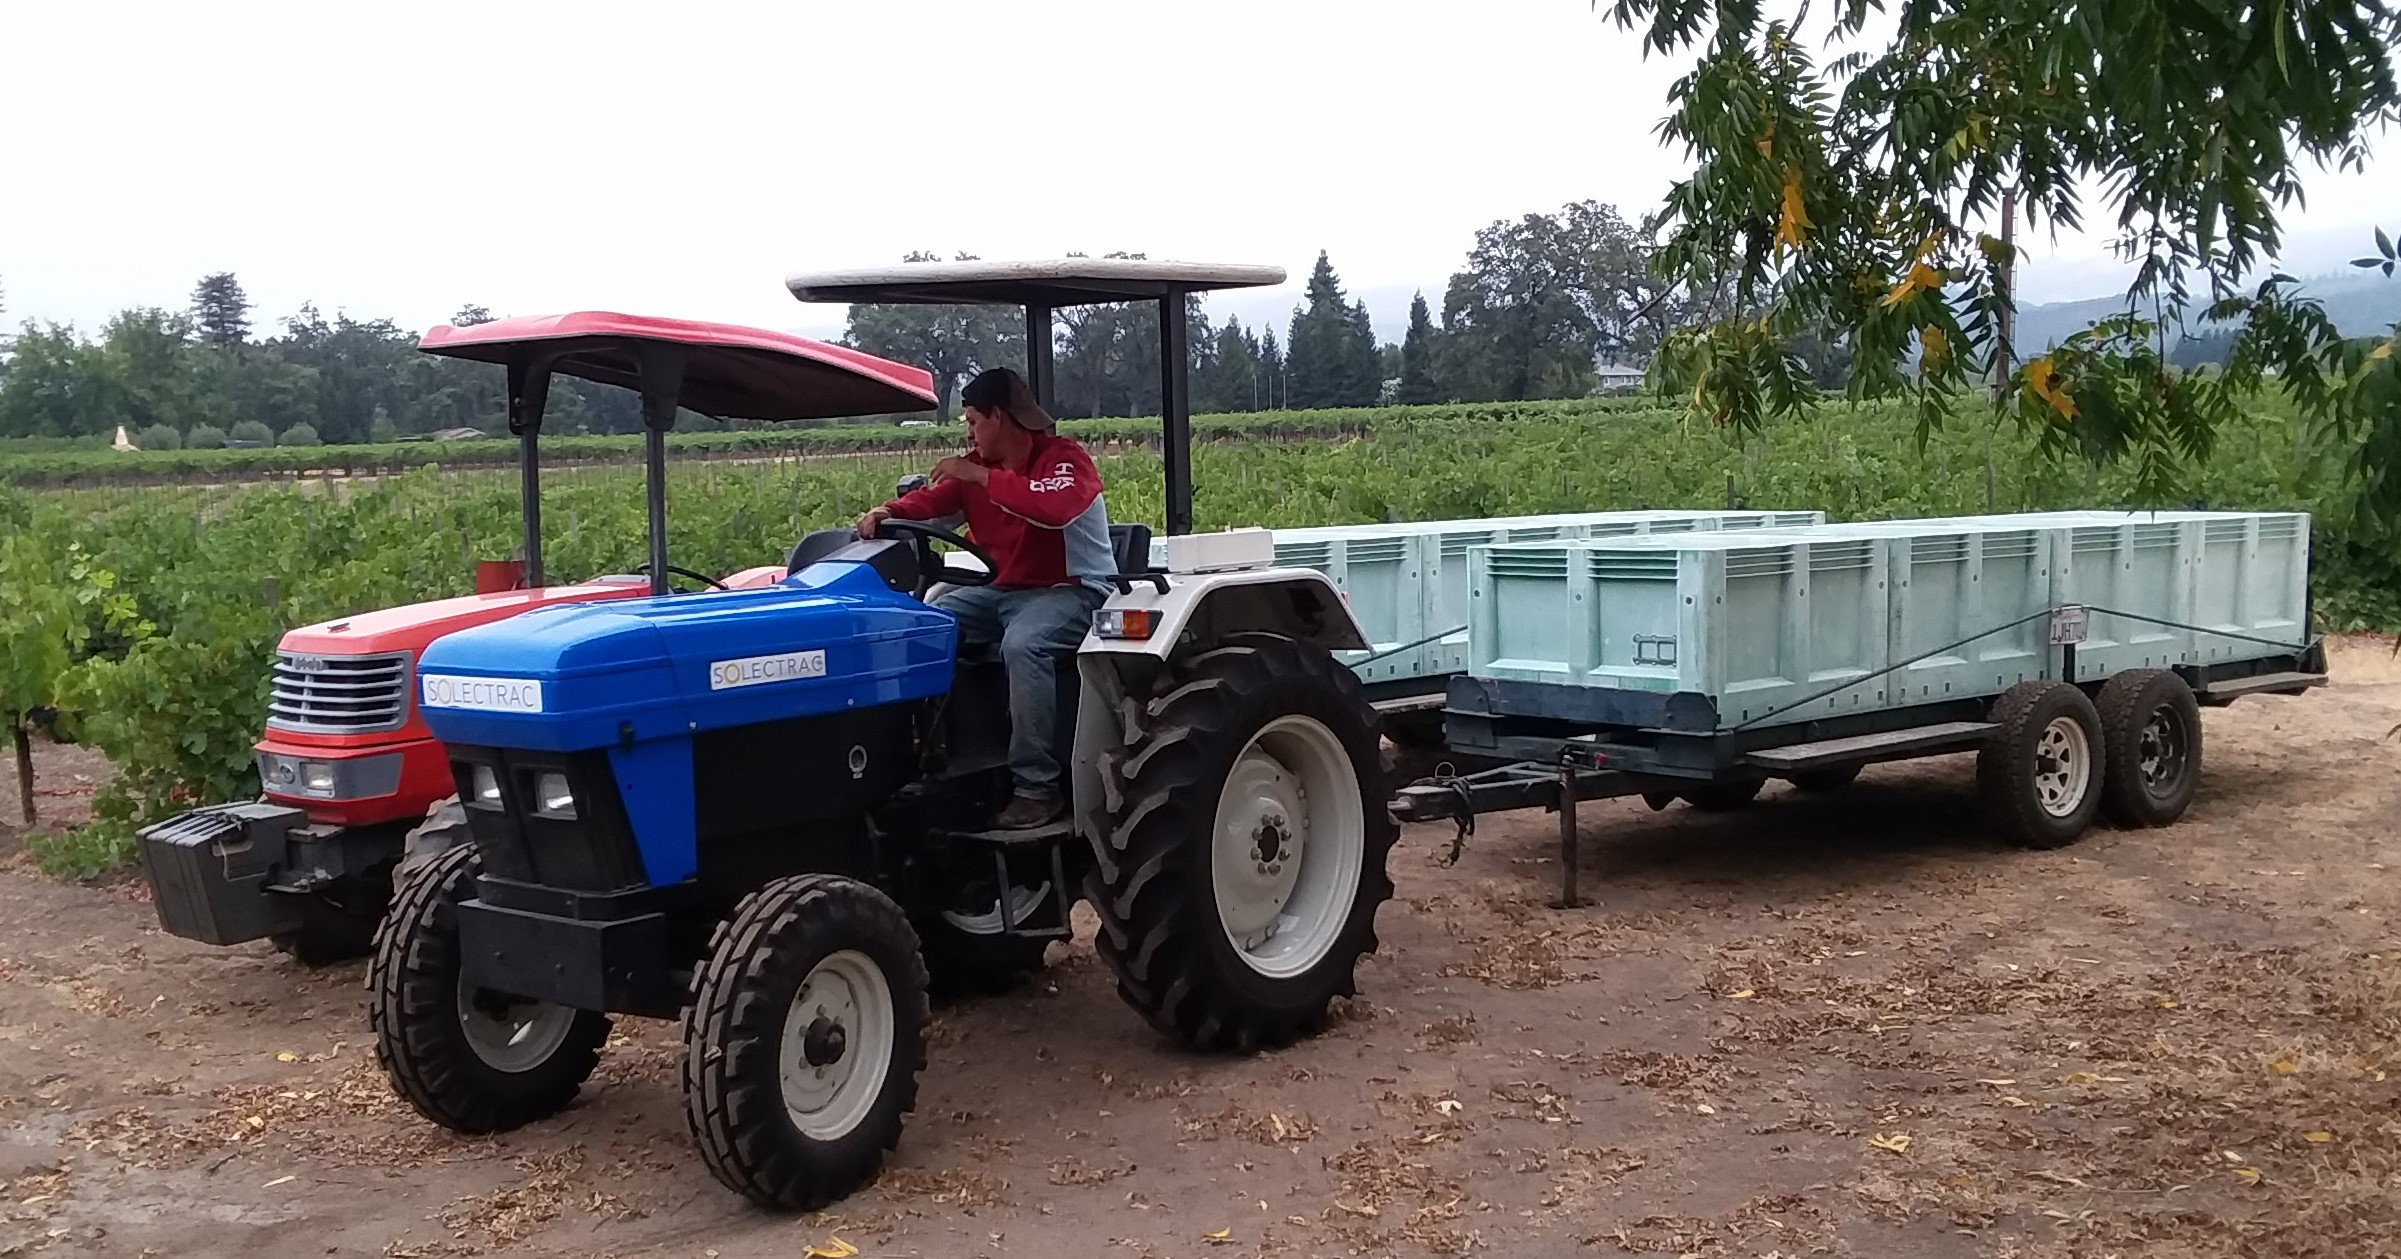 Harvesting grapes with an electric tractor on Frogs Leap Vineyard in Napa, California.